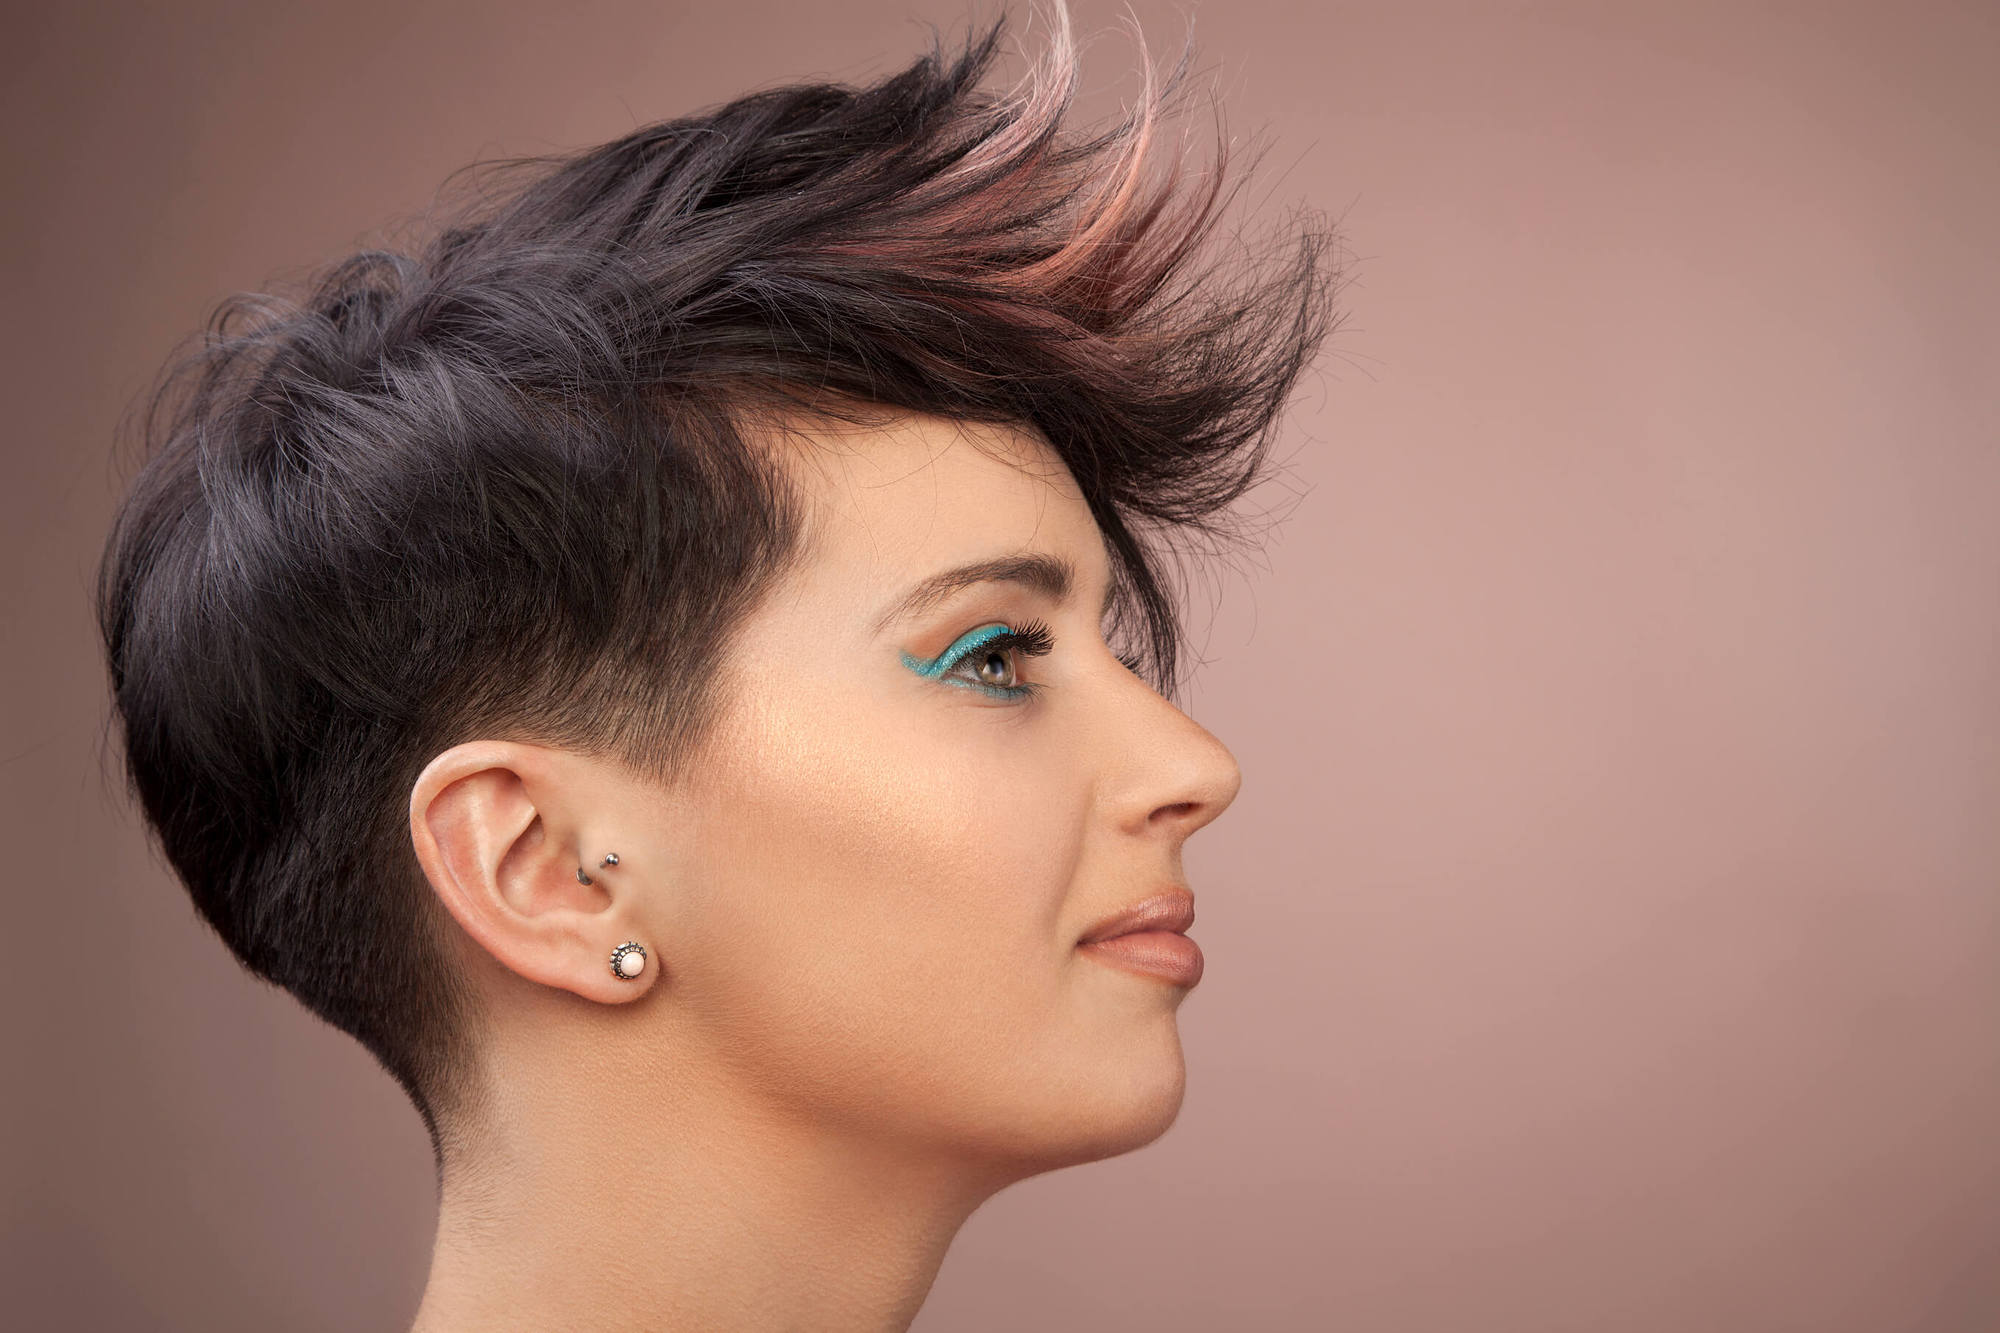 Edgy hair ideas: spiked up